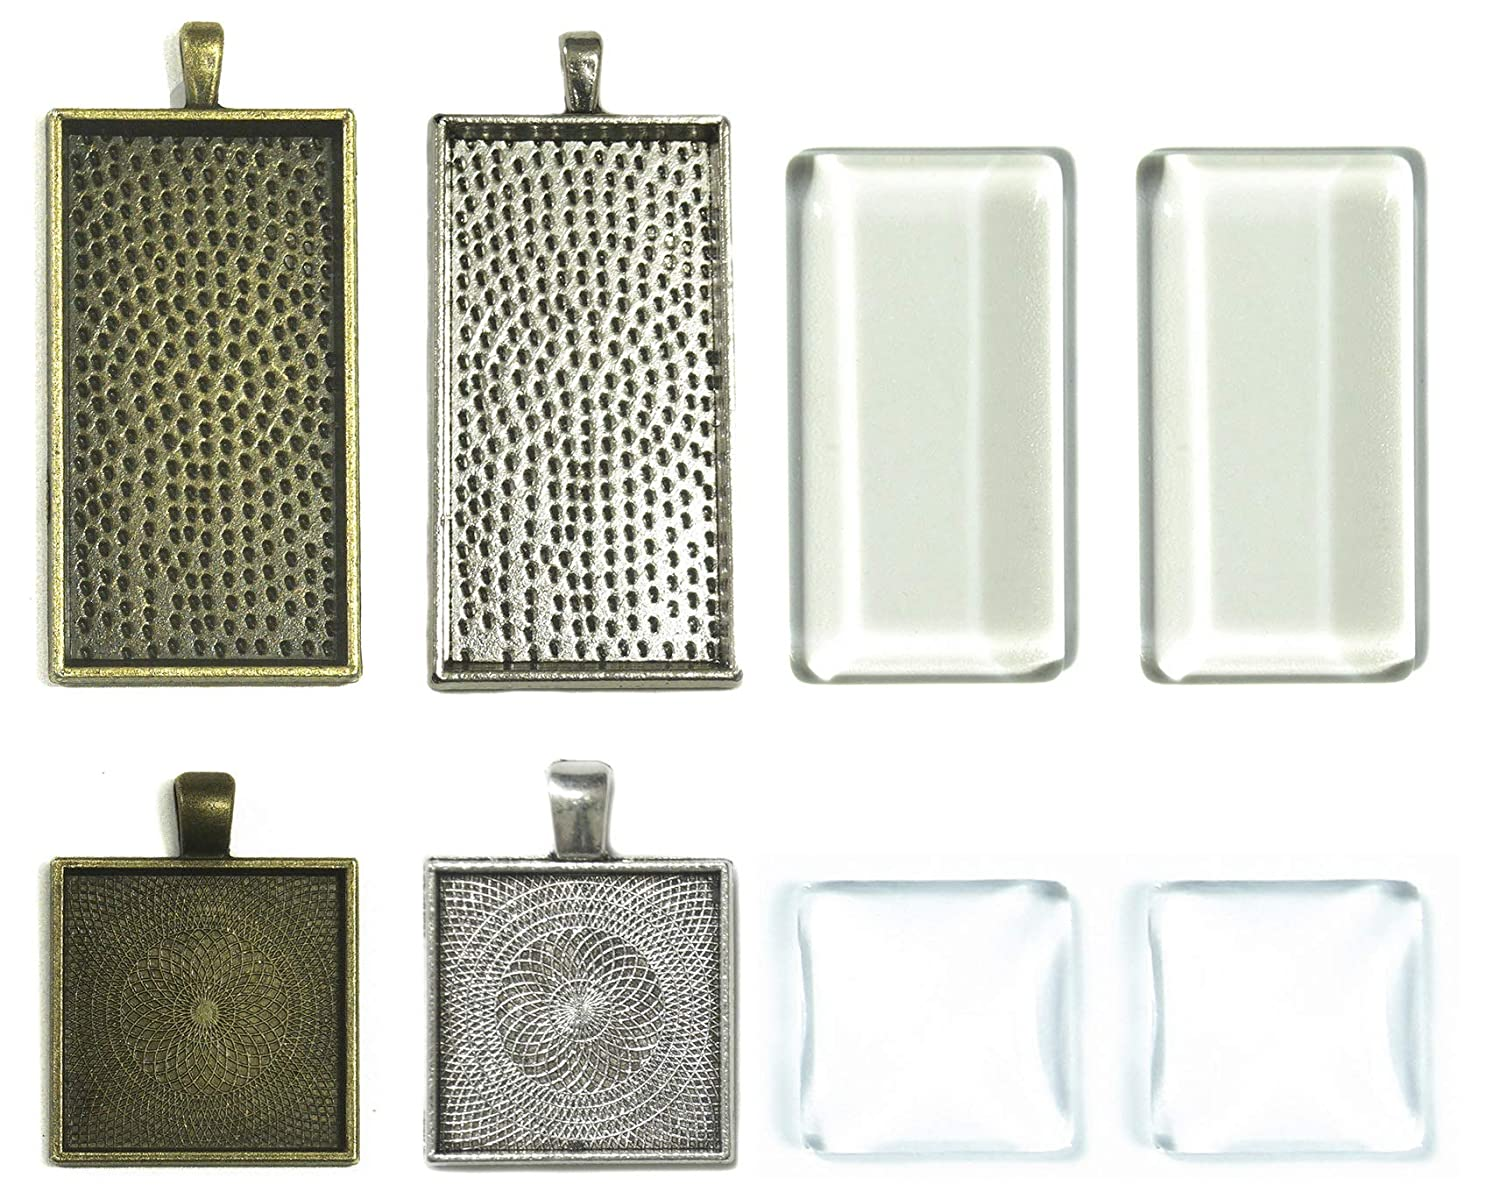 ALL in ONE Mixed Styles Cabochon Set: 20pcs Cabochon Frame Tray Pendant with 20pcs Glass Dome for DIY Jewelry Making Jewelry Making DIY Findings (Rectangle + Square - 20 Sets)